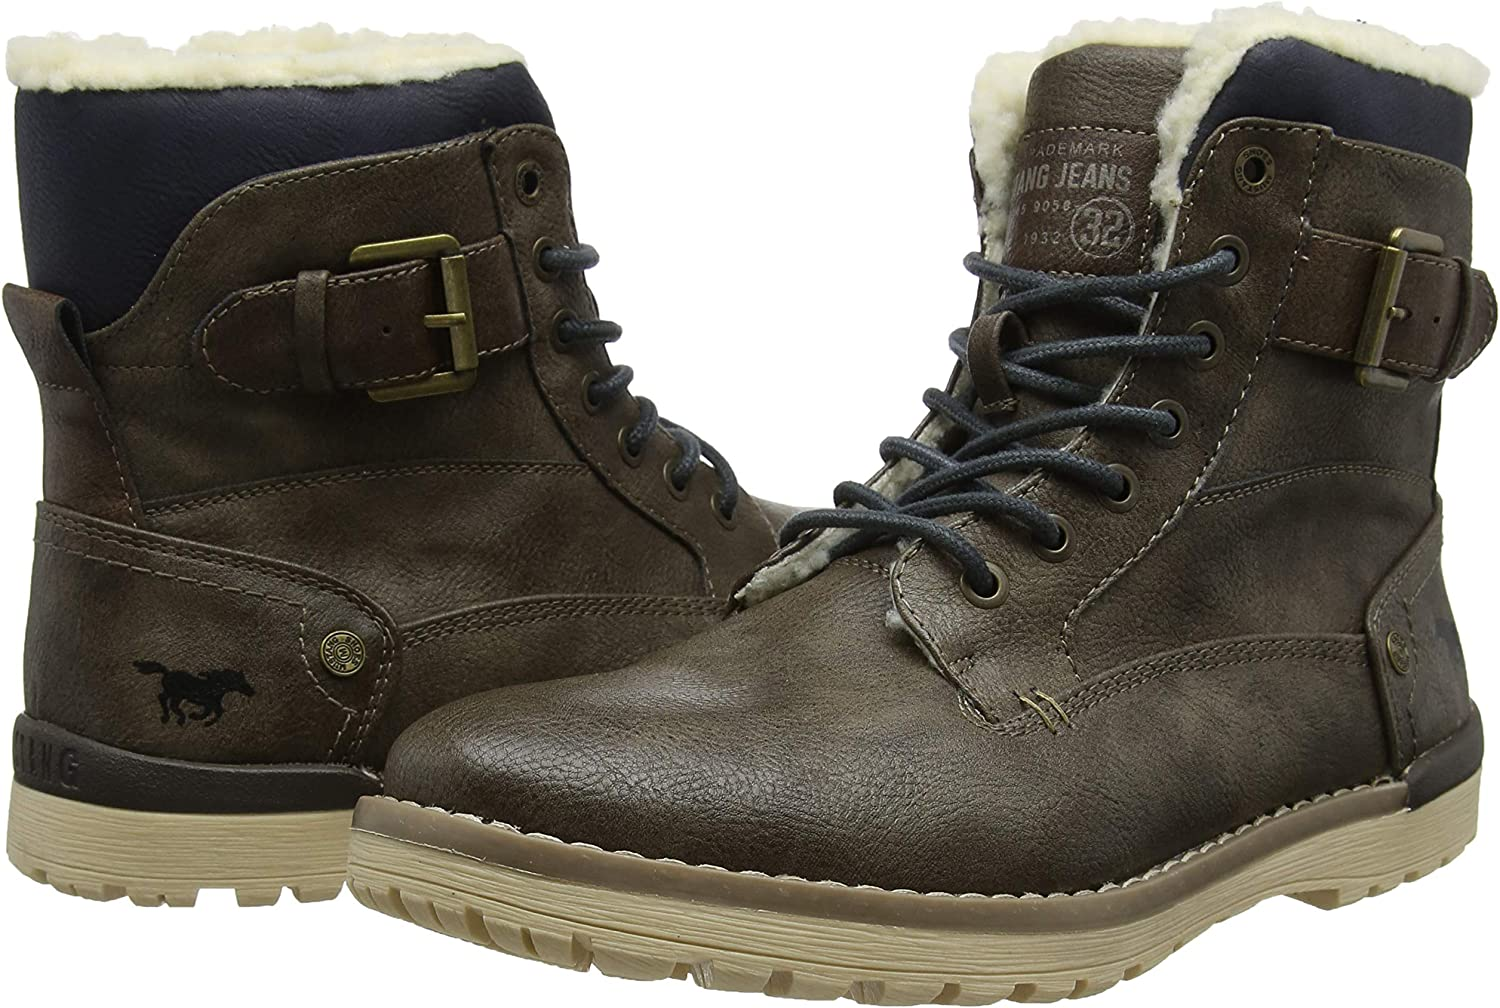 Mustang Schn/ür-Boot Bottes /& Bottines Classiques Homme